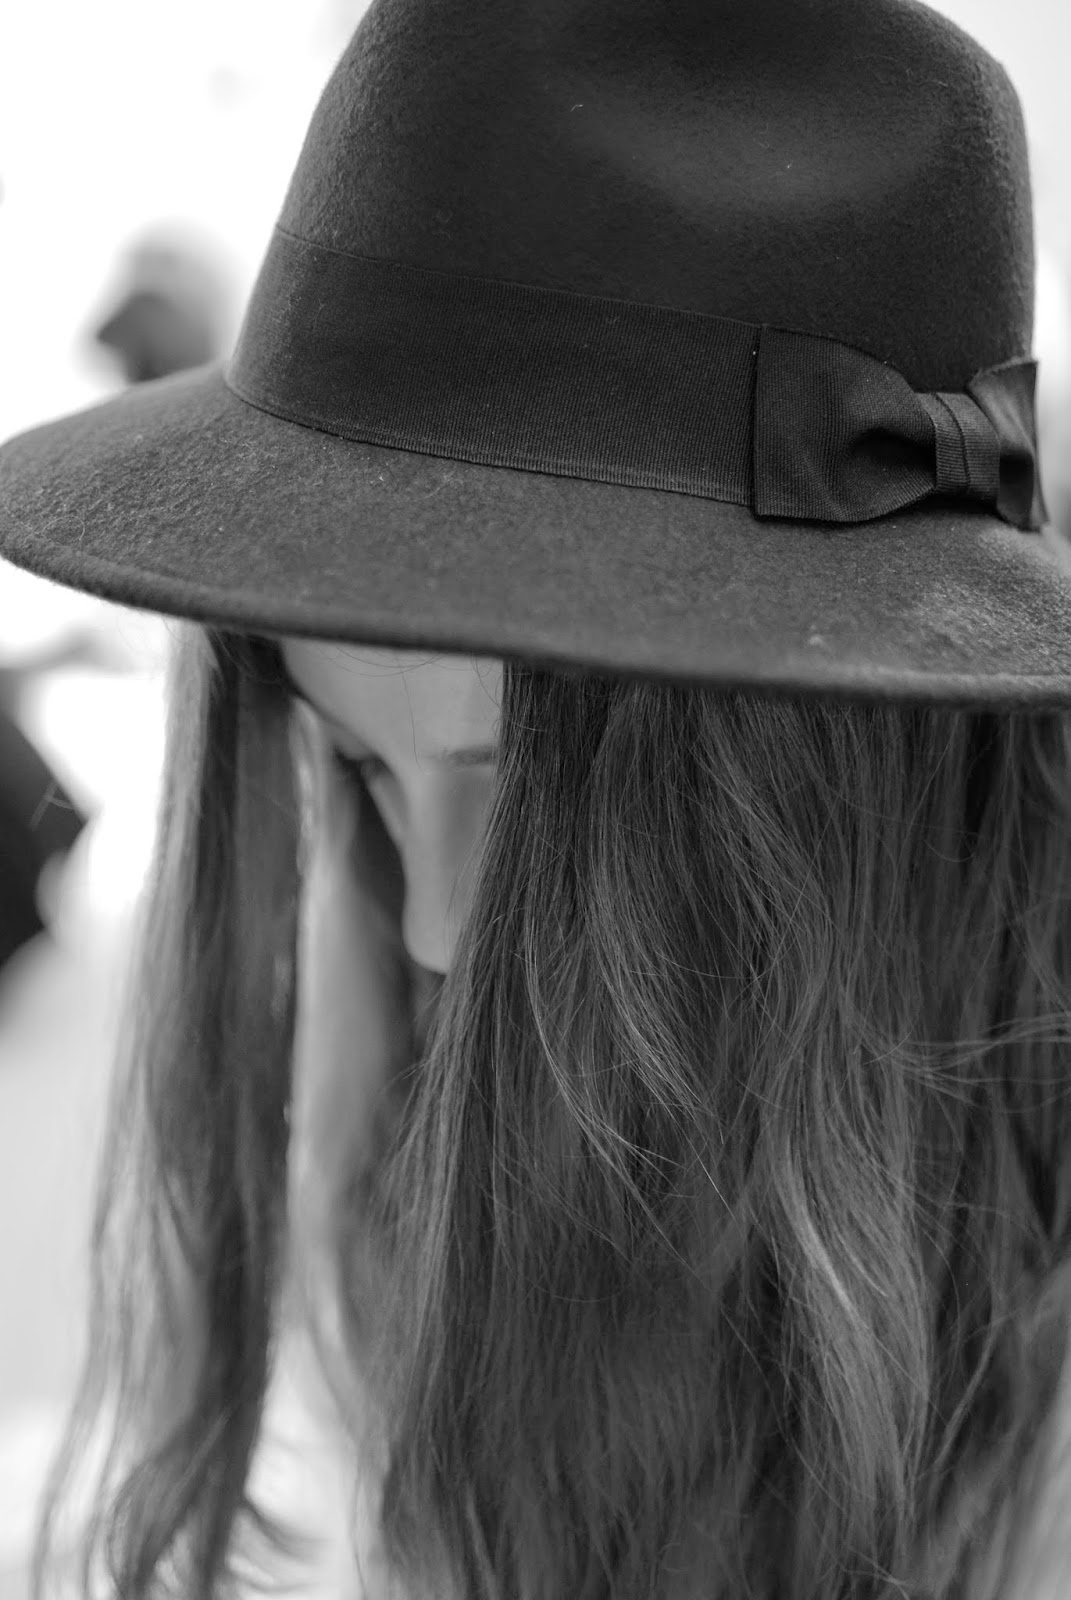 london-fashion-week-2014-lfw-DAKS-show-catwalk-spring-summer-2015-clothes-fashion-royal-opera-house-dress-girl-hat